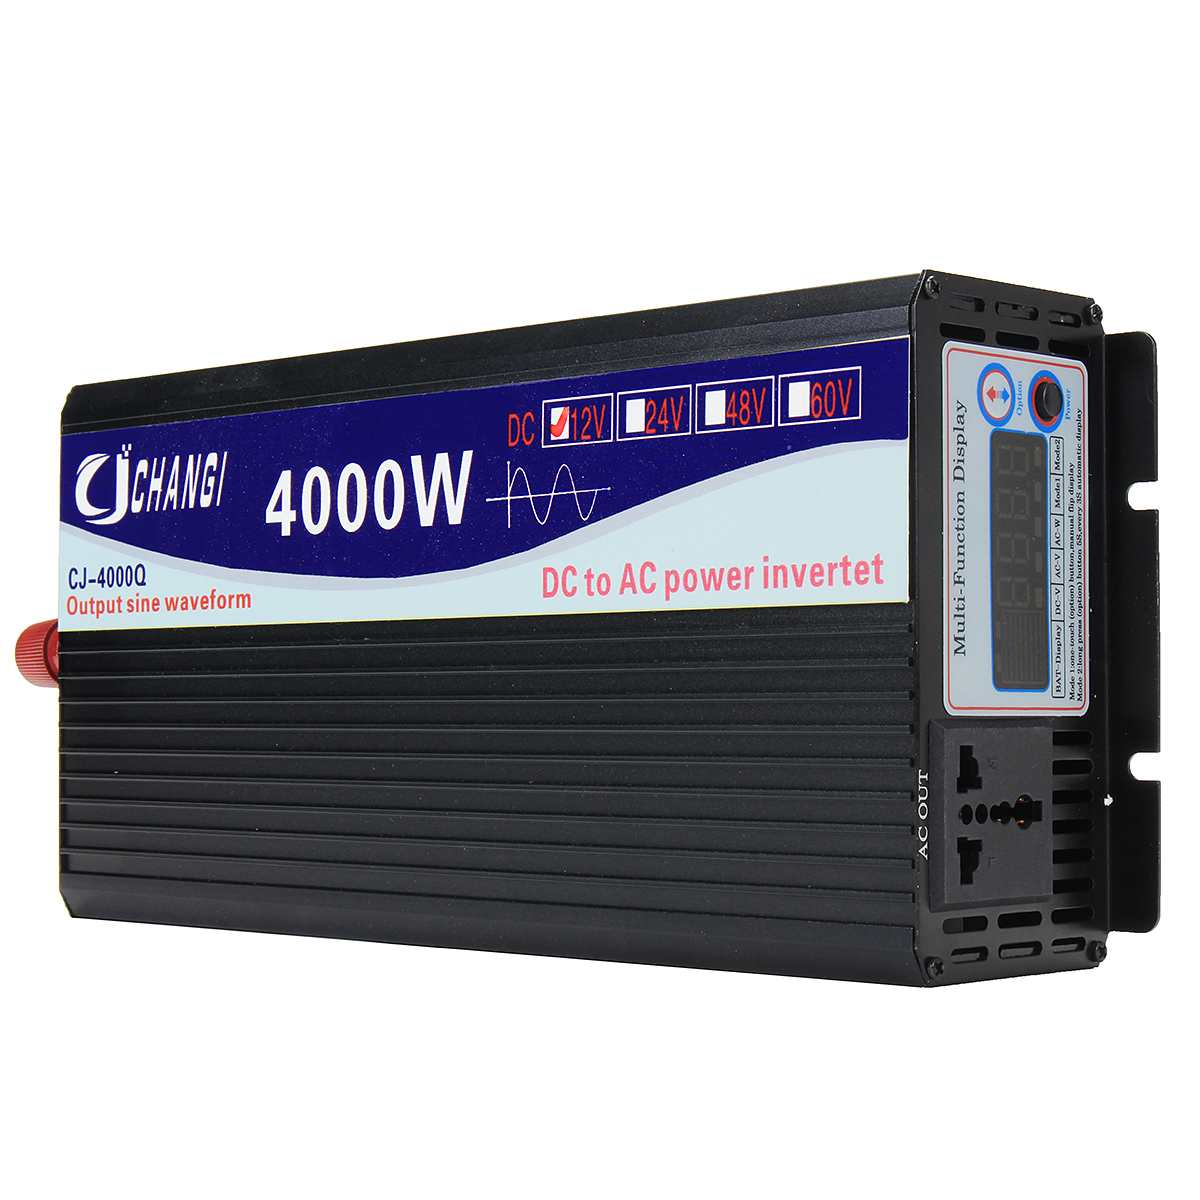 Spannung transformator <font><b>Inverter</b></font> <font><b>12V</b></font> <font><b>220V</b></font> 3000 W/4000 W/5000 W/6000 W Intelligente Reinen sinus Solar Power <font><b>Inverter</b></font> 12 V/24 V Zu <font><b>220V</b></font> image